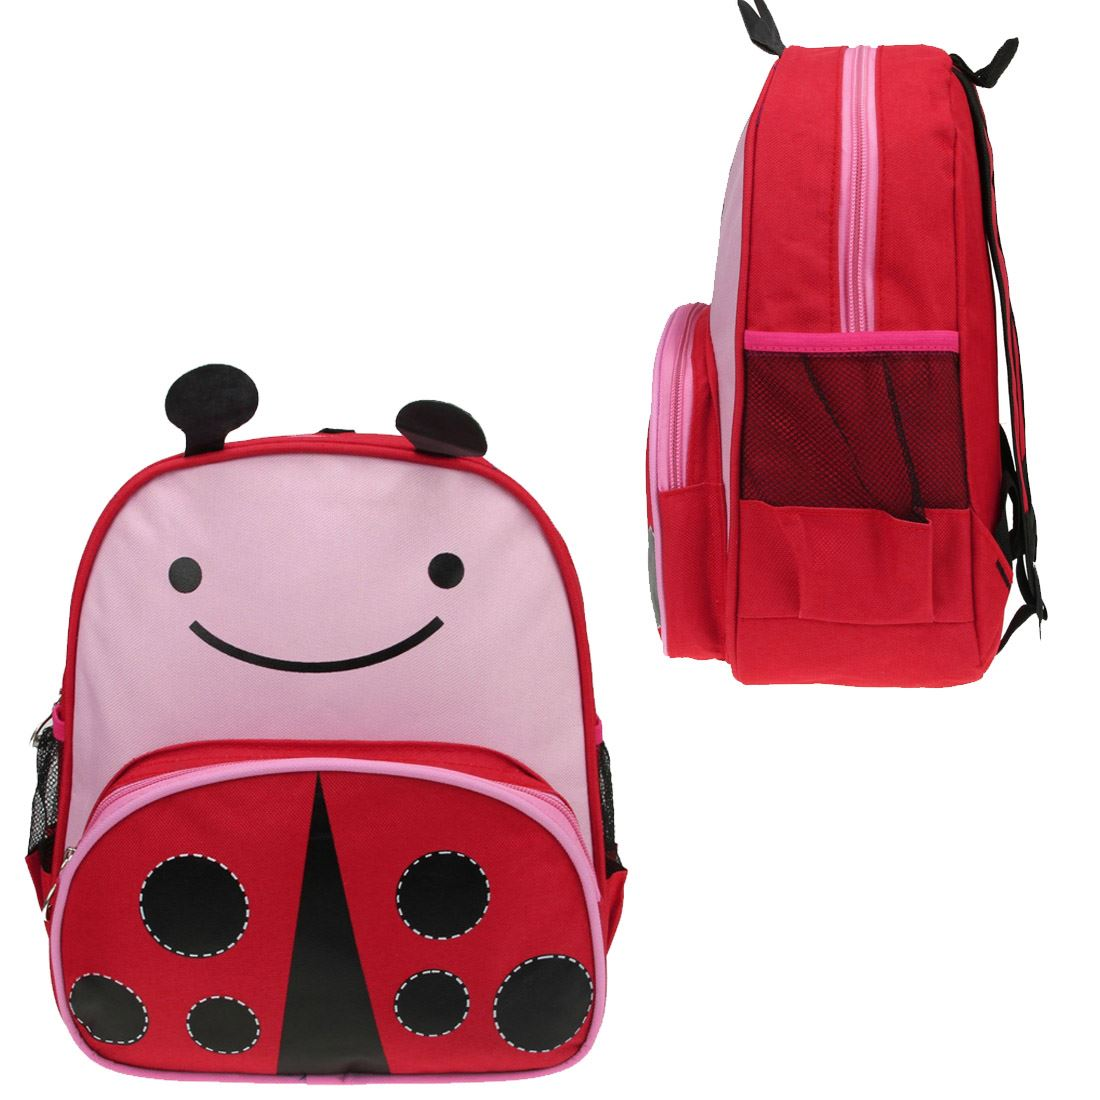 Cute School Bag Uk - Best School Bag 2017